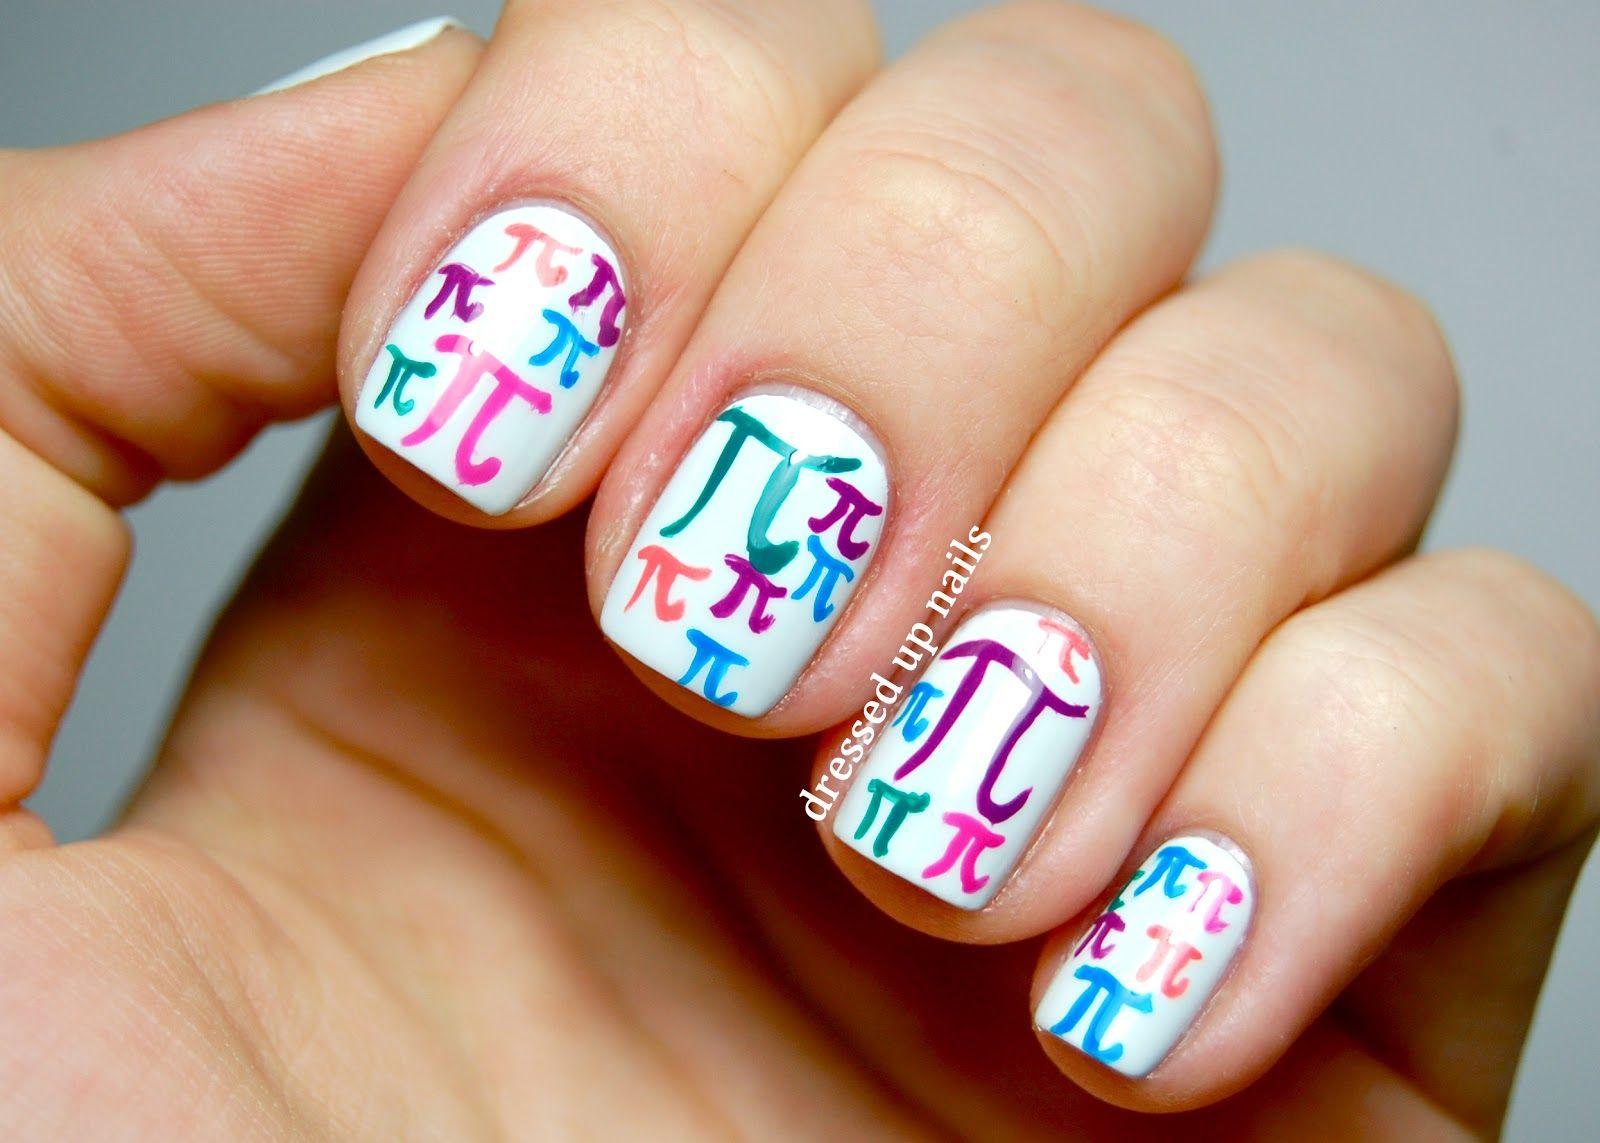 nails - Buscar con Google | Uñas | Pinterest | Designs nail art, Art ...